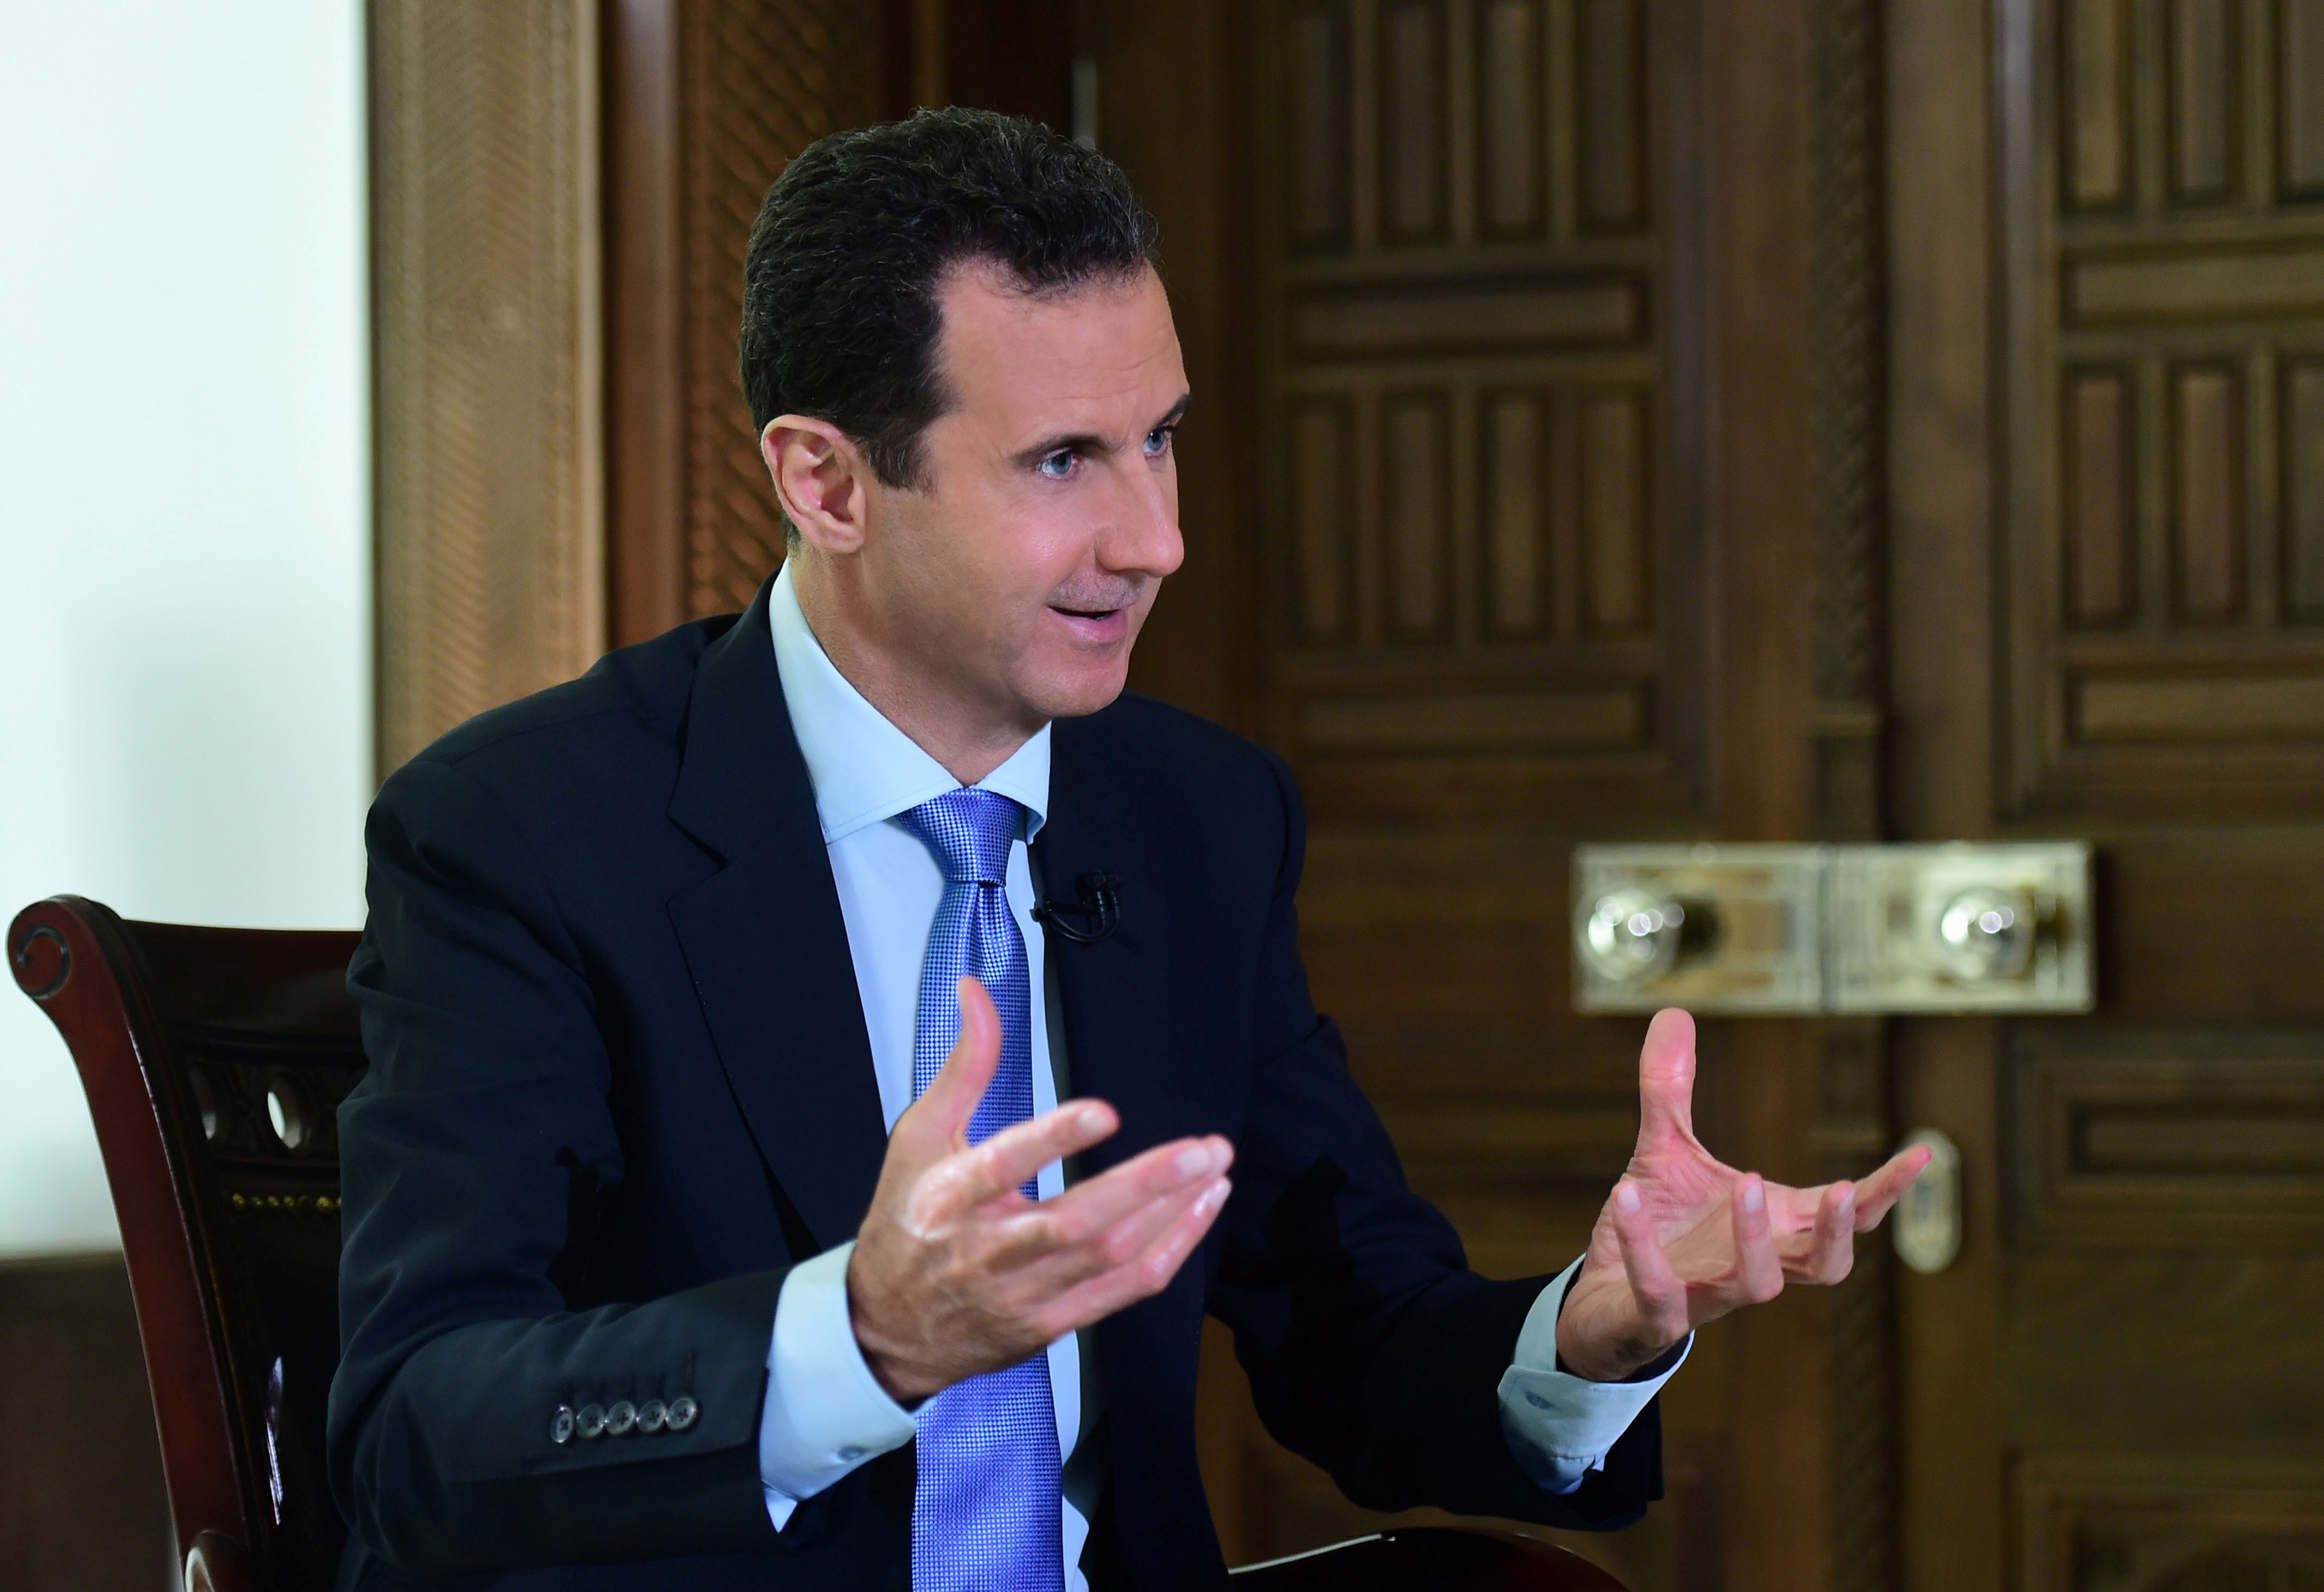 Syria's President Bashar al-Assad speaks during an interview with a Portuguese television channel